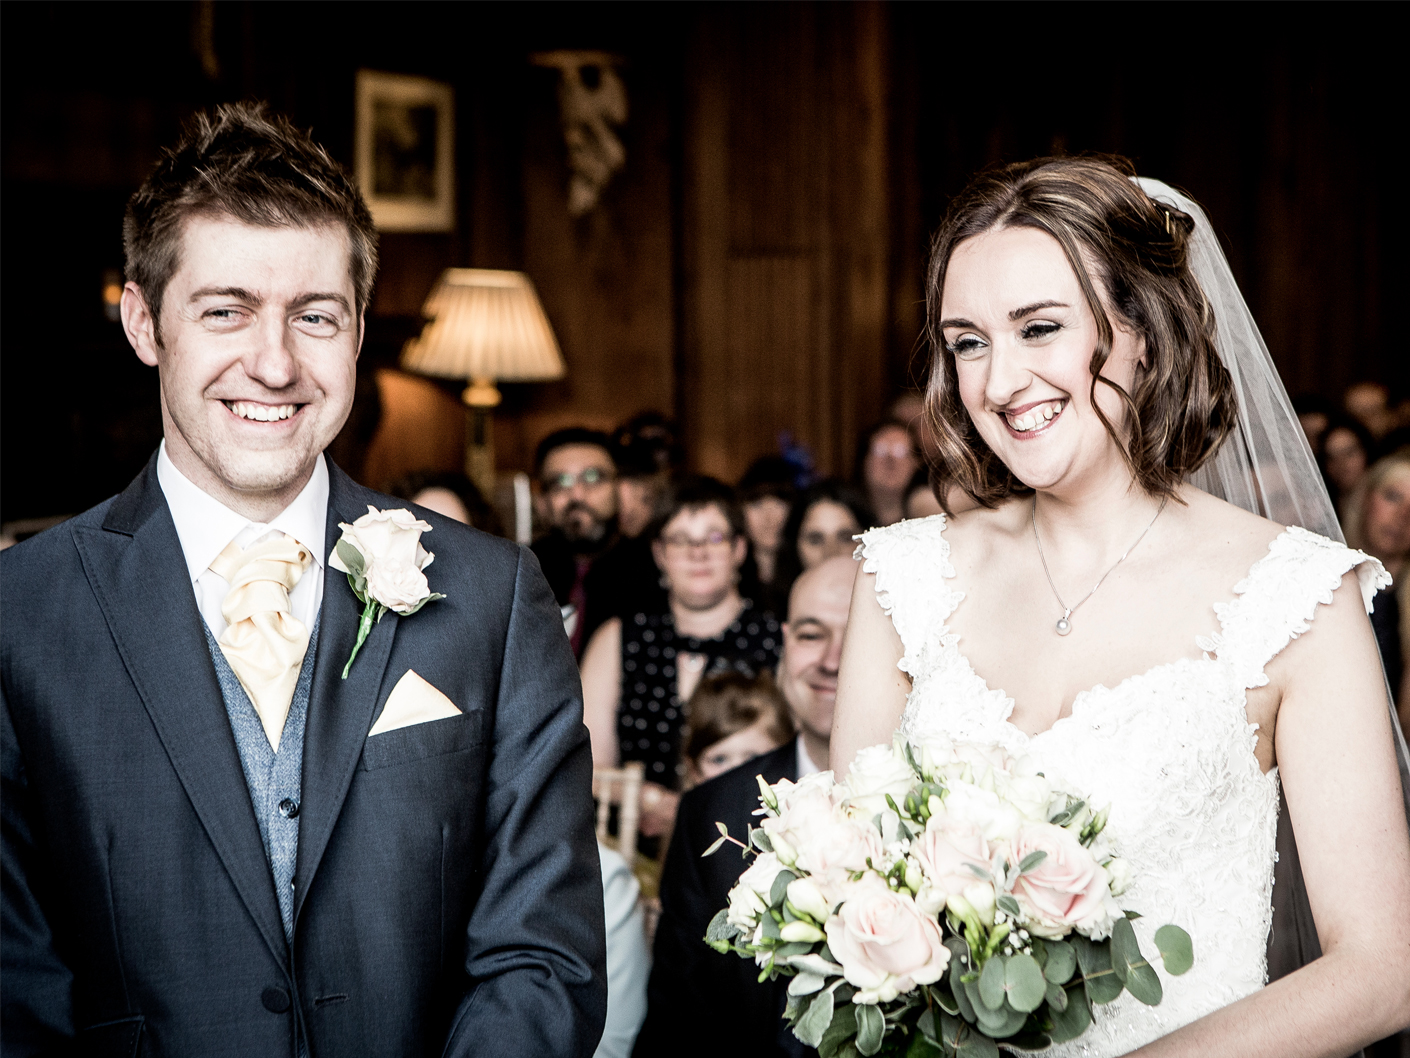 the-wedding-vows-photography-at-thornton-manor-wirral